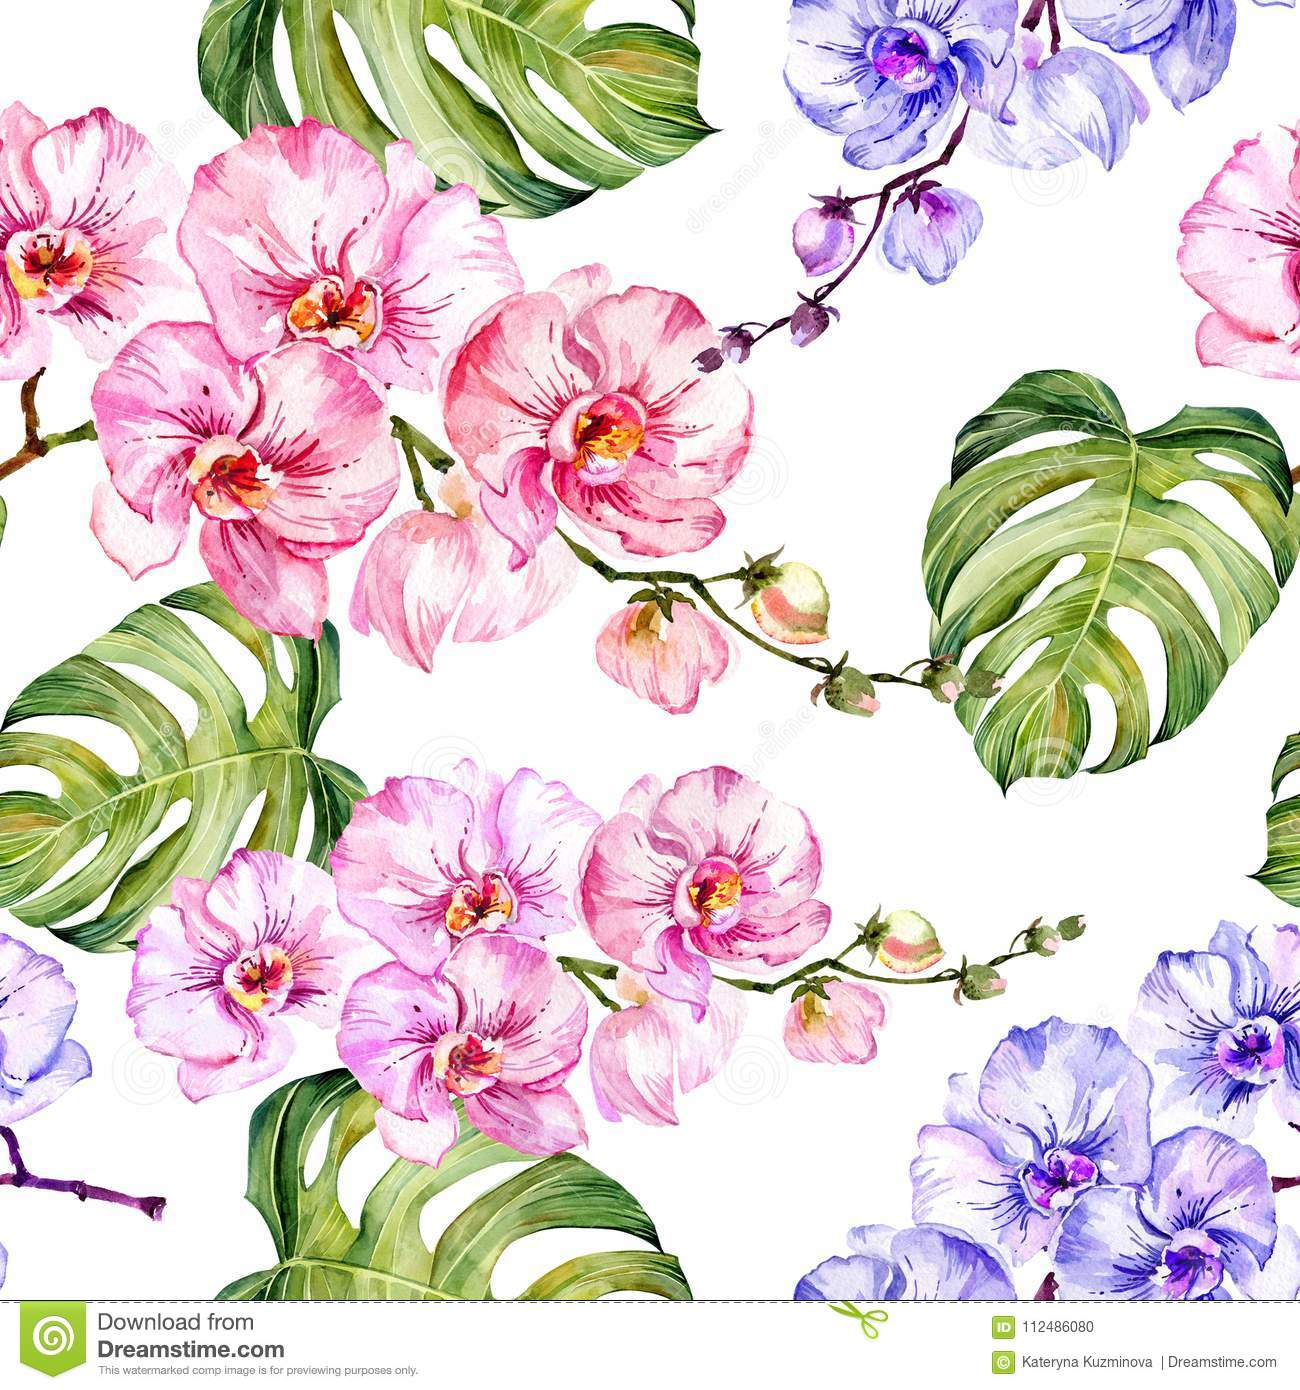 Blue and pink orchid flowers and monstera leaves on white background. Seamless floral pattern. Watercolor painting.